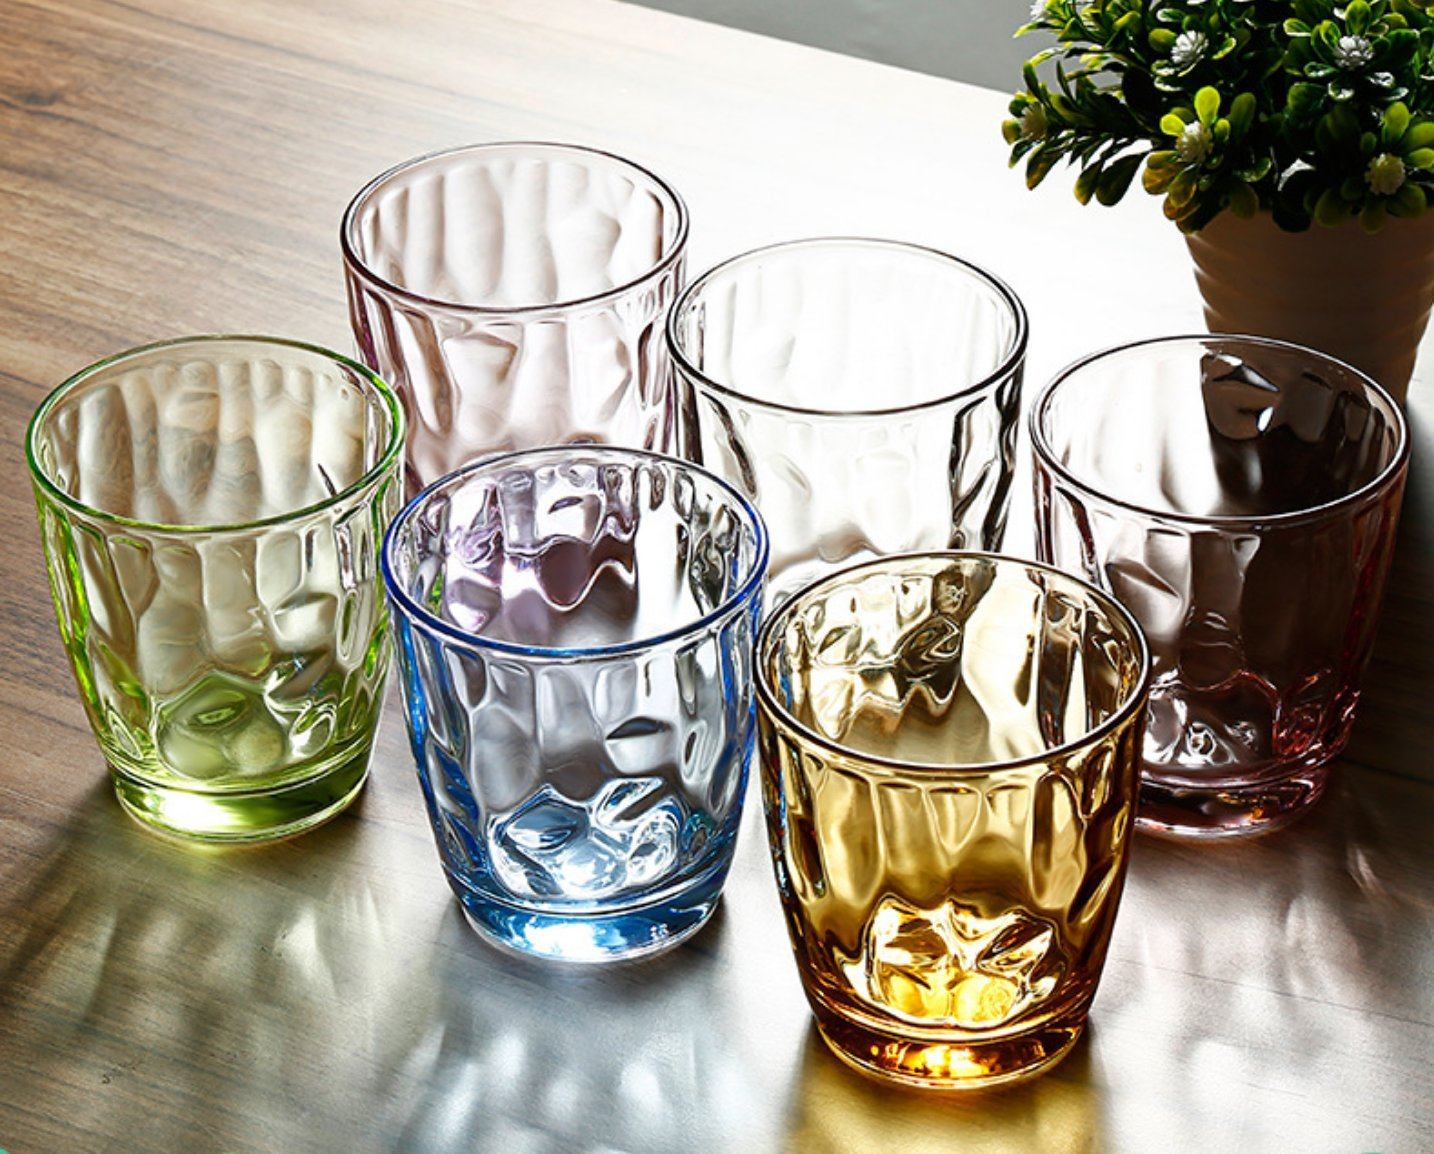 Glassware Drinkware Glass Cups Set - 6 PCS, Colorful Glasses Mugs Glasses Ware for Water and Drinking by YYVIGO (8.5OZ, Colorful)